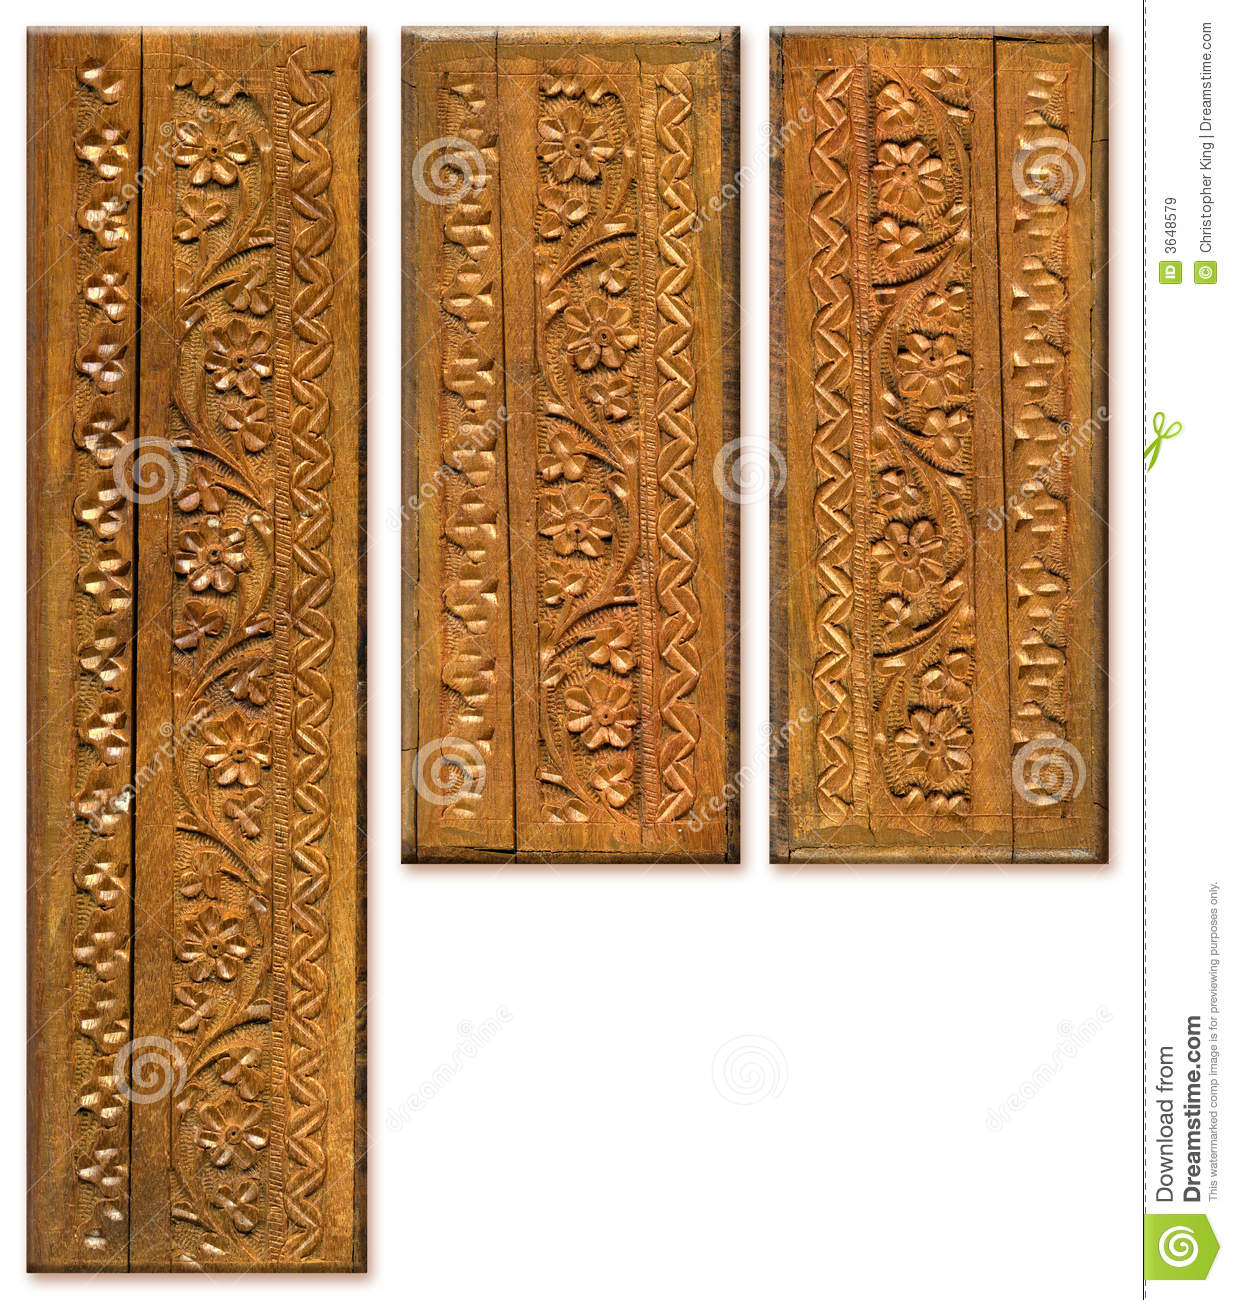 Wood carving pattern design elements royalty free stock for Wood carving doors hd images